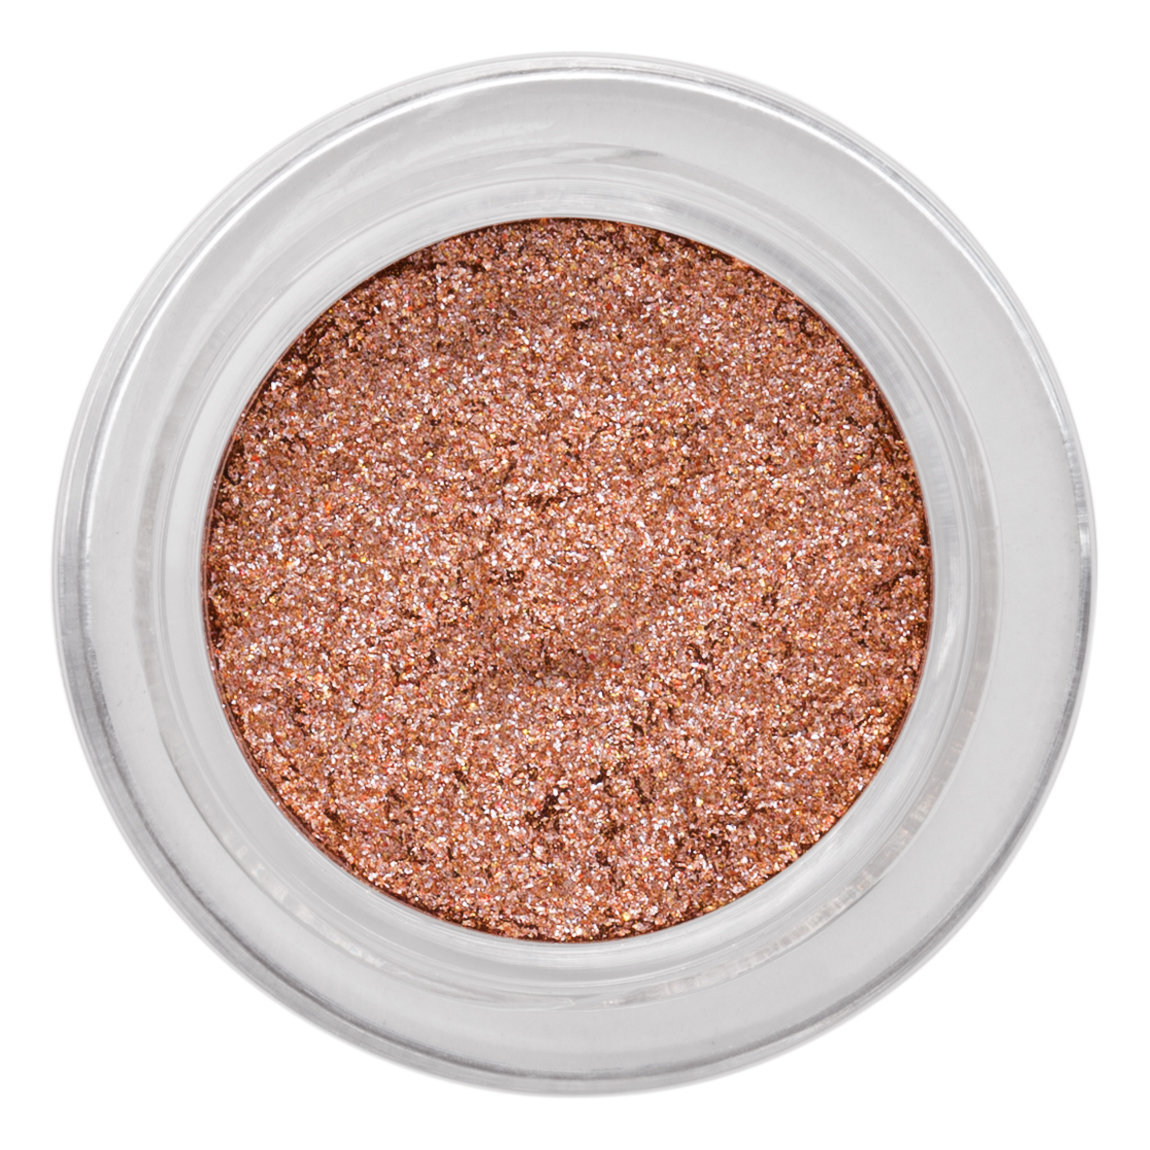 Hourglass Scattered Light Glitter Eyeshadow Ray